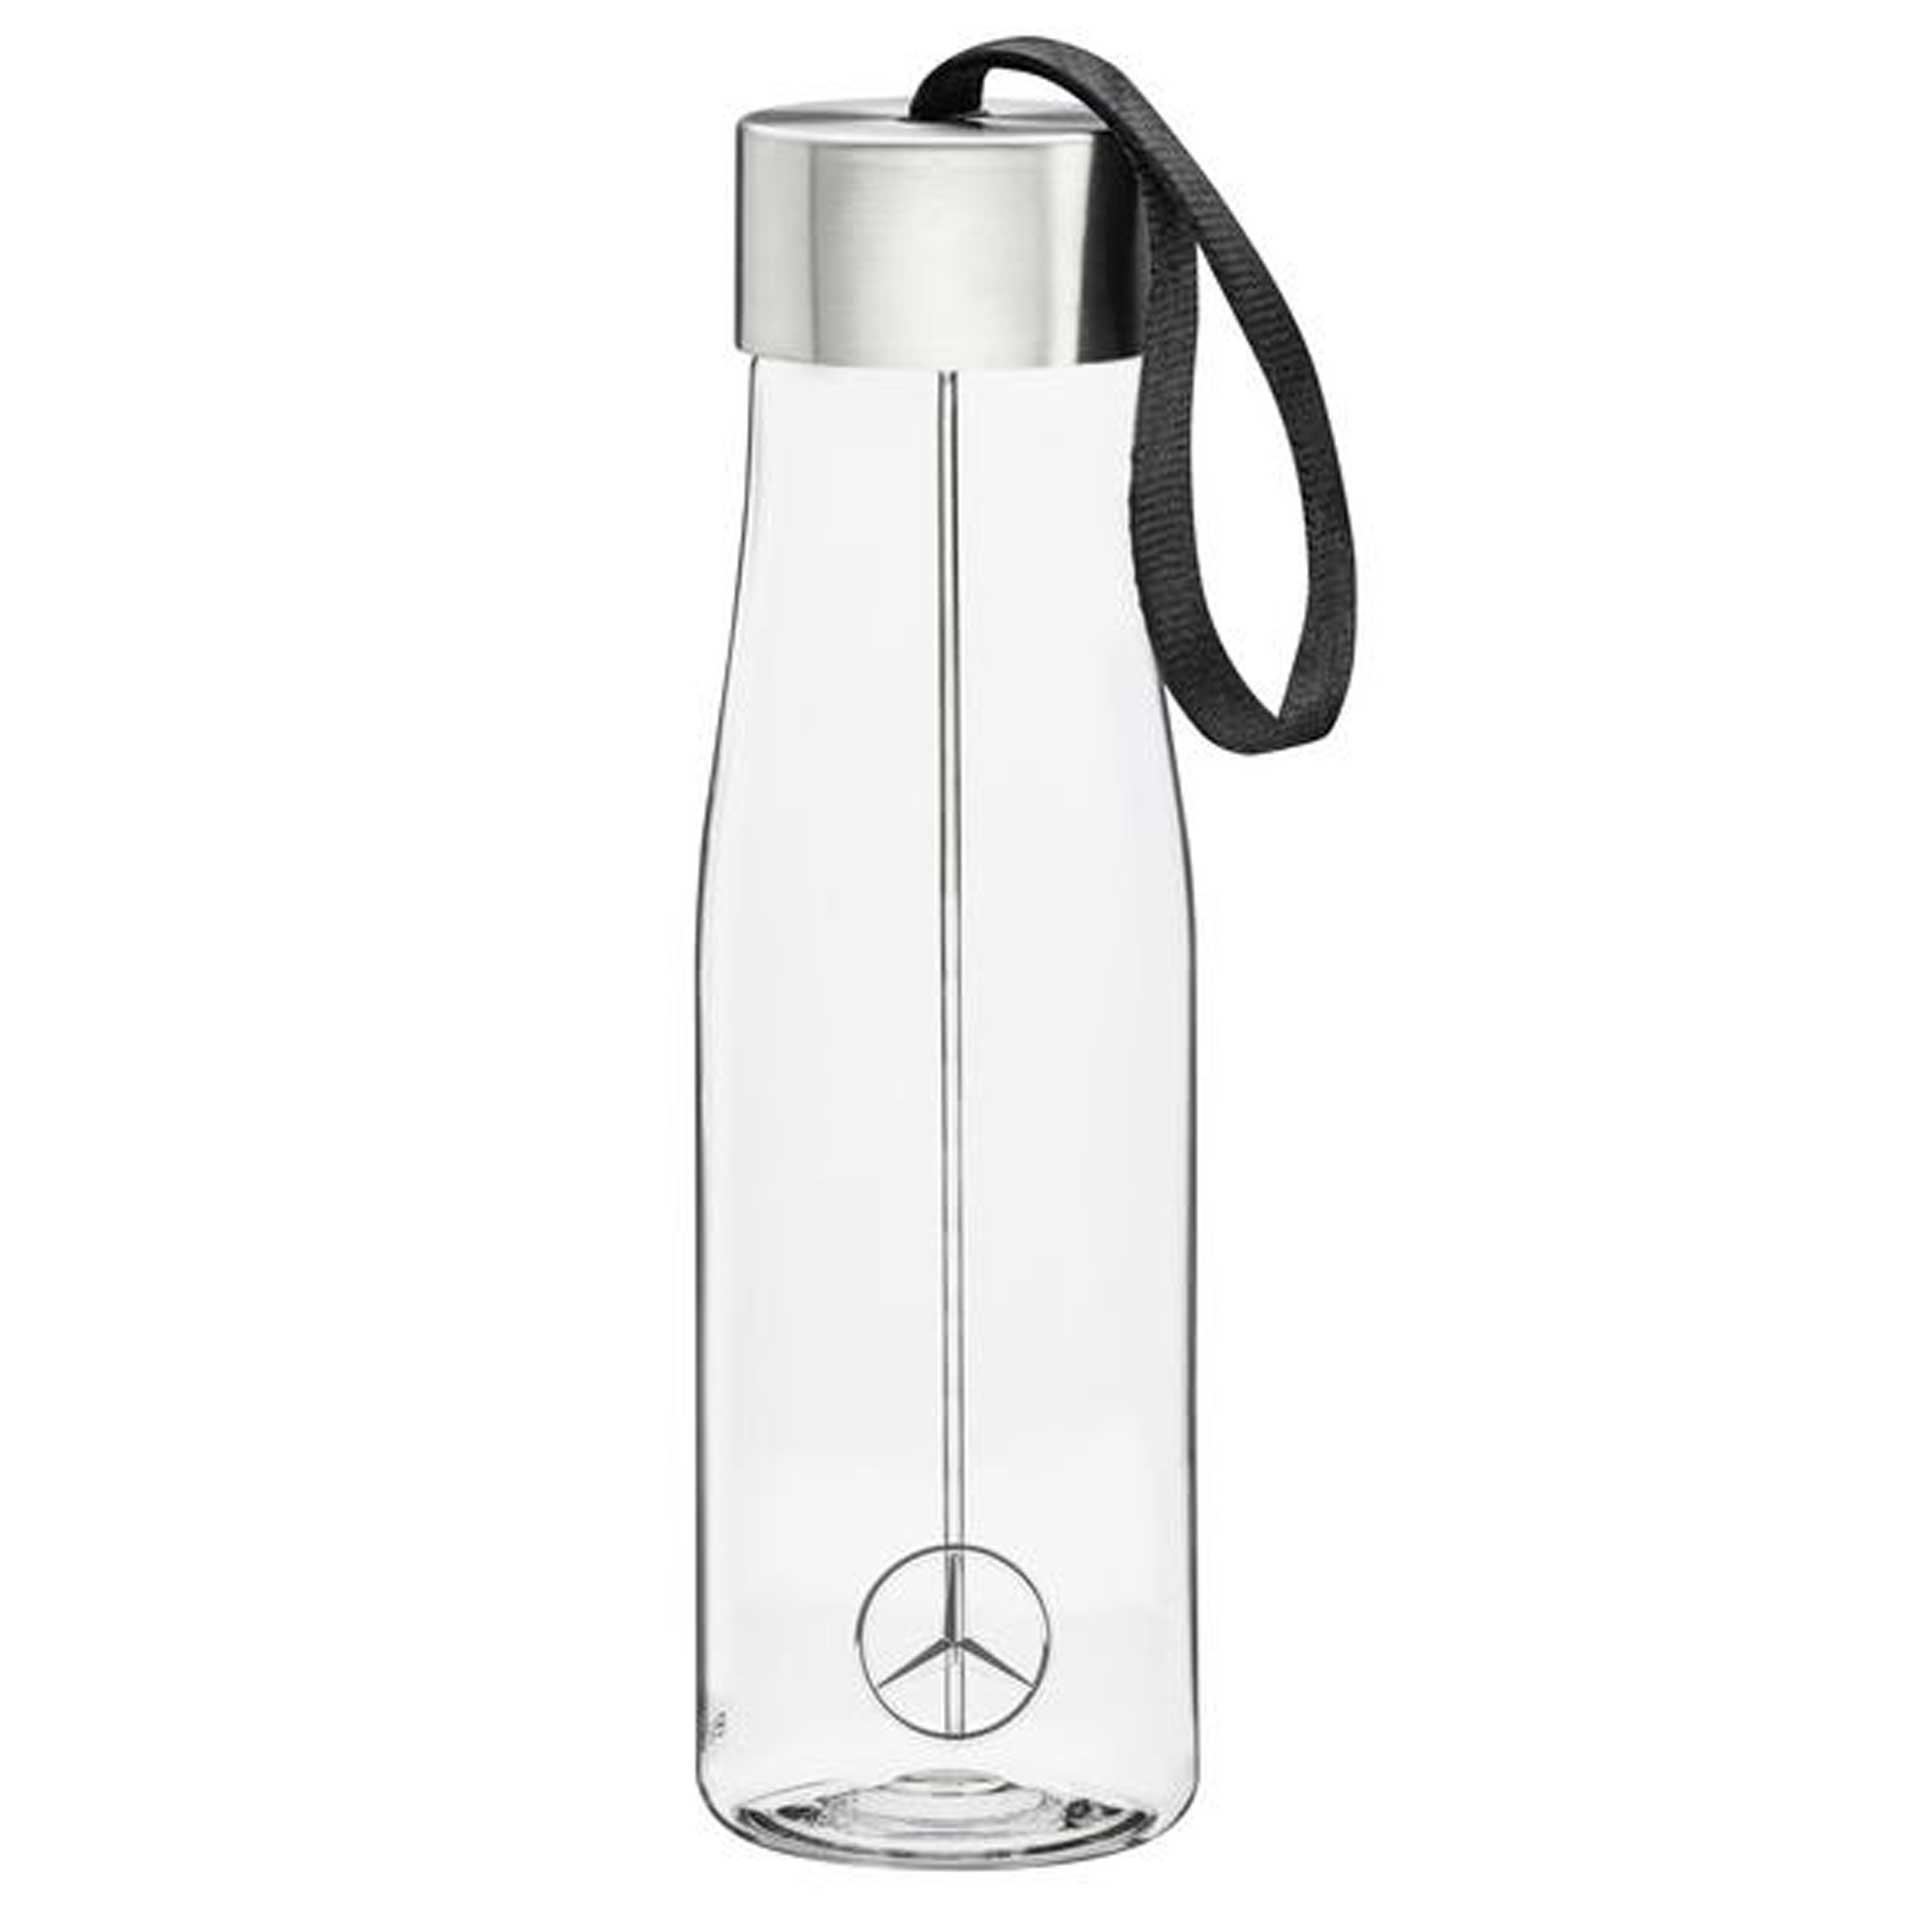 Mercedes-Benz Trinkflasche Myflavour by eva solo 0,75 l